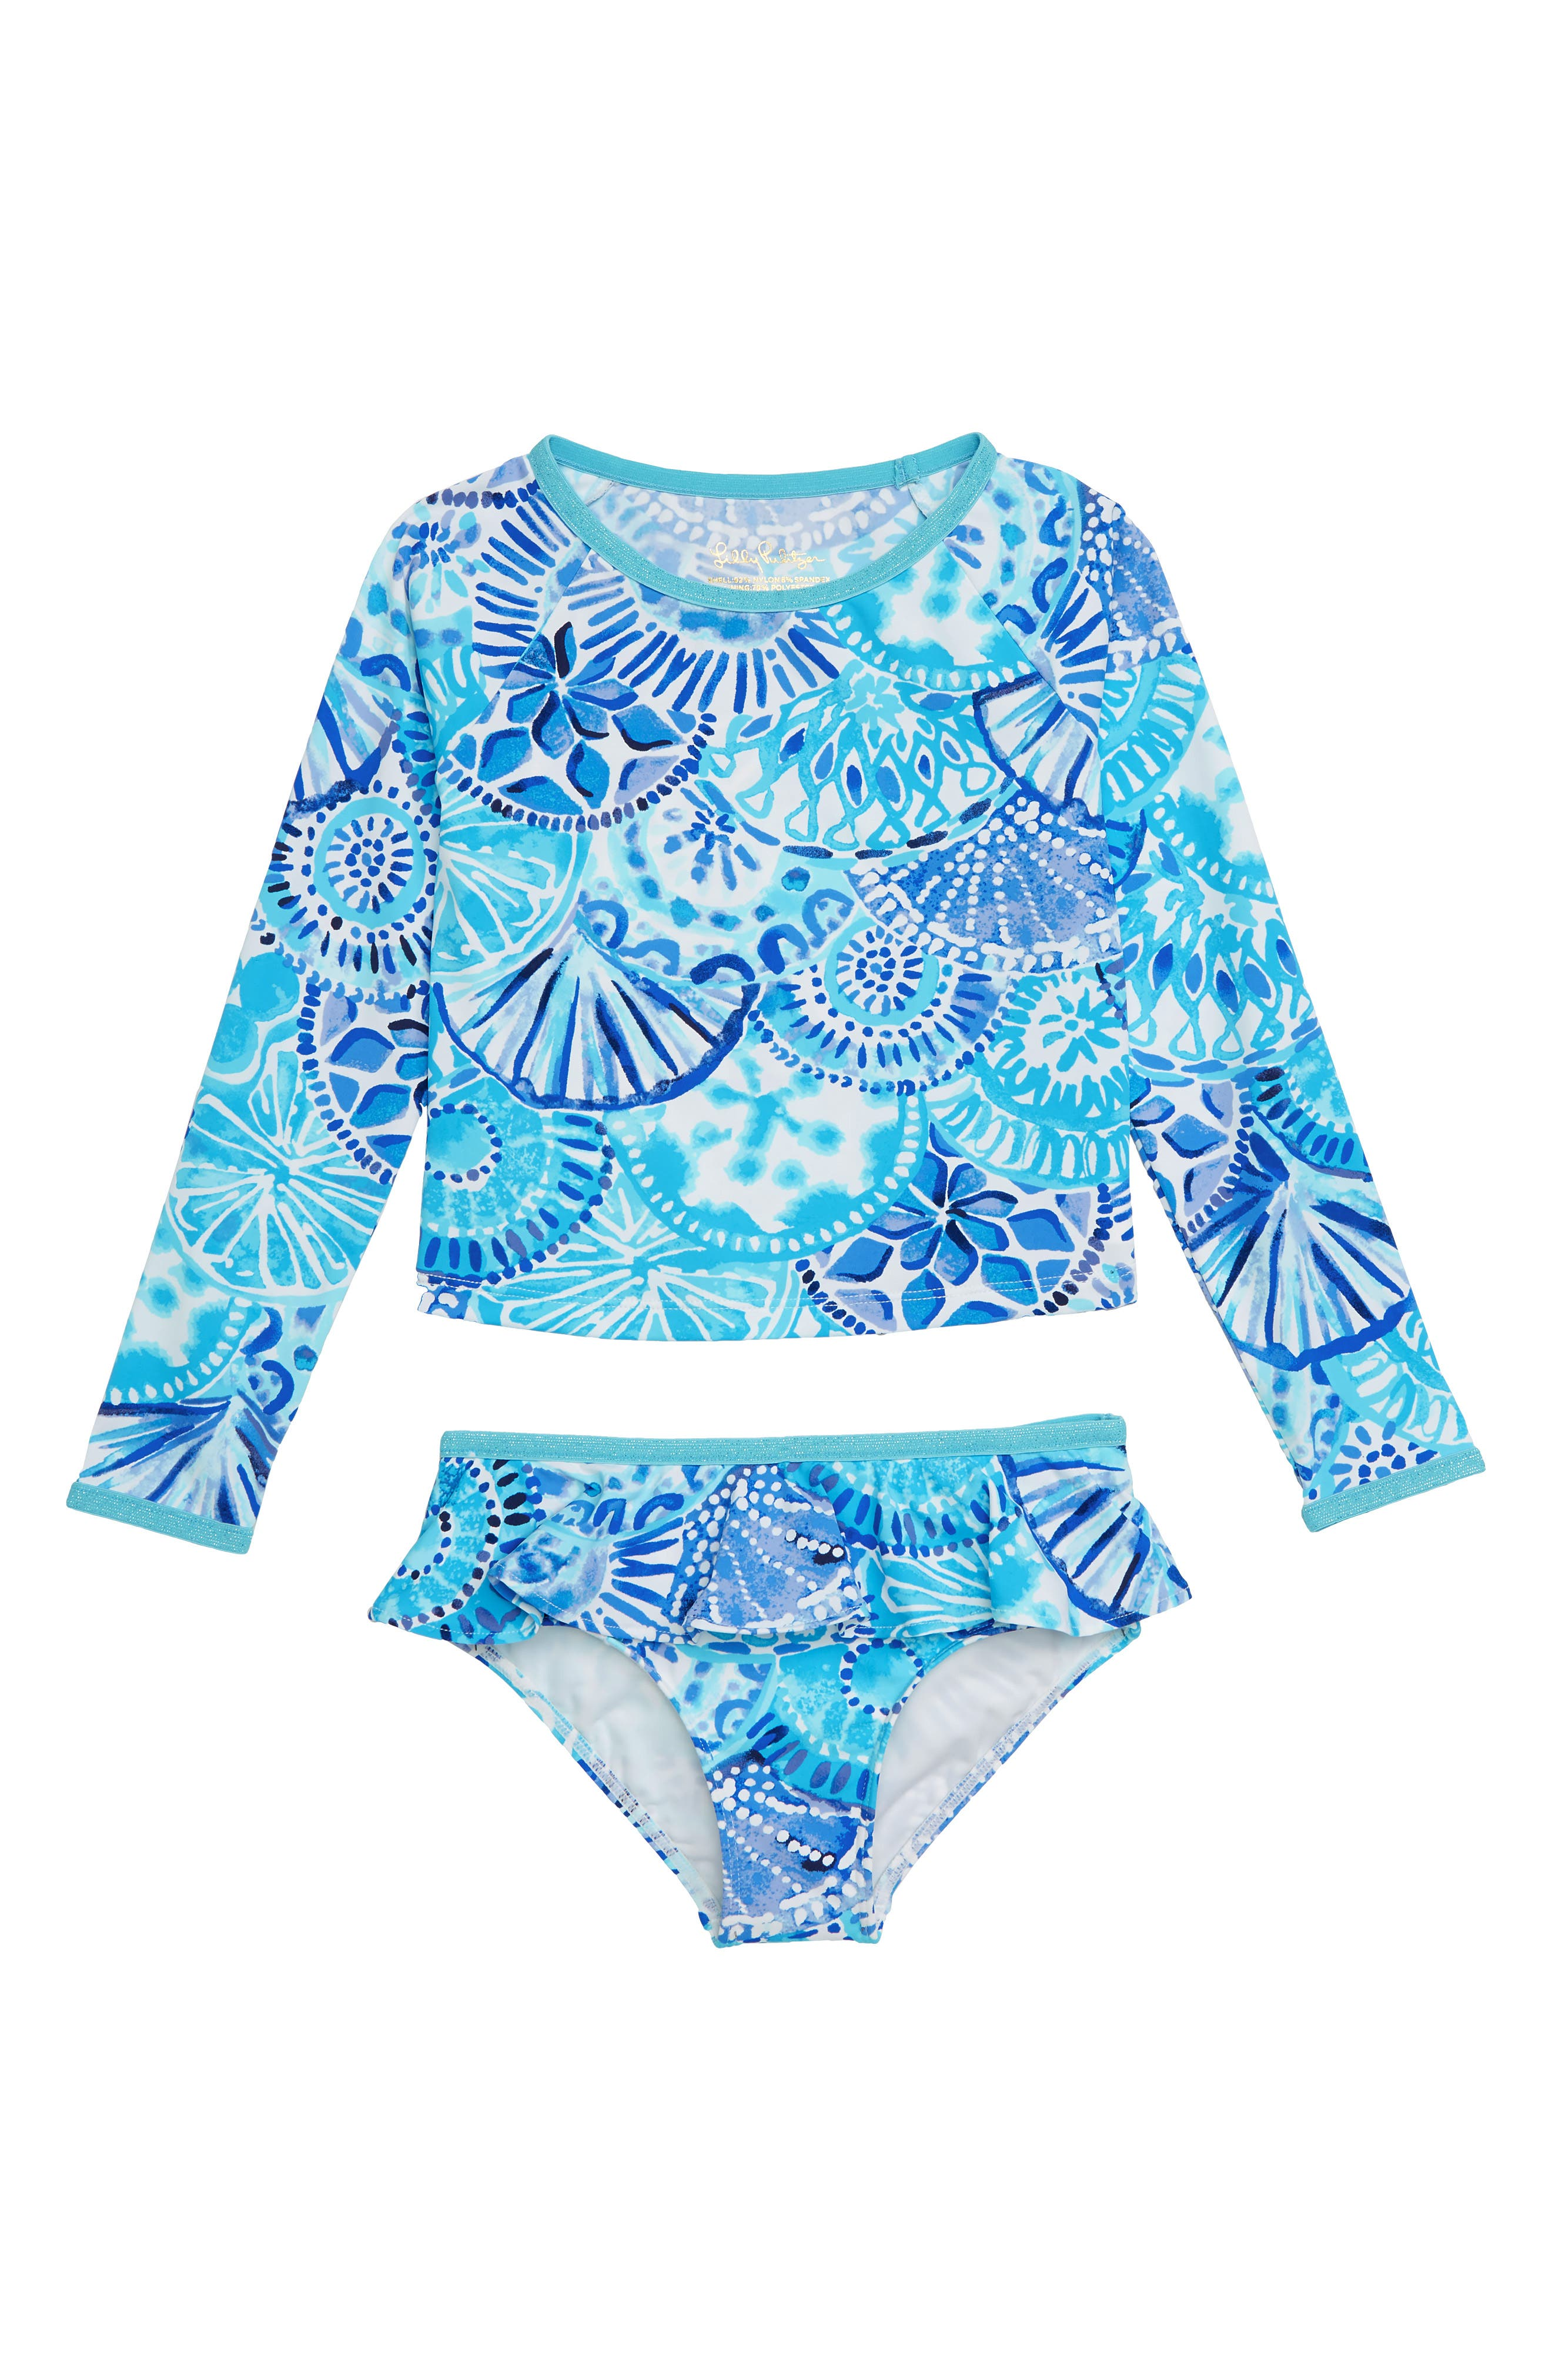 Cora Two-Piece Rashguard Swimsuit,                             Main thumbnail 1, color,                             TURQUOISE OASIS HALF SHELL